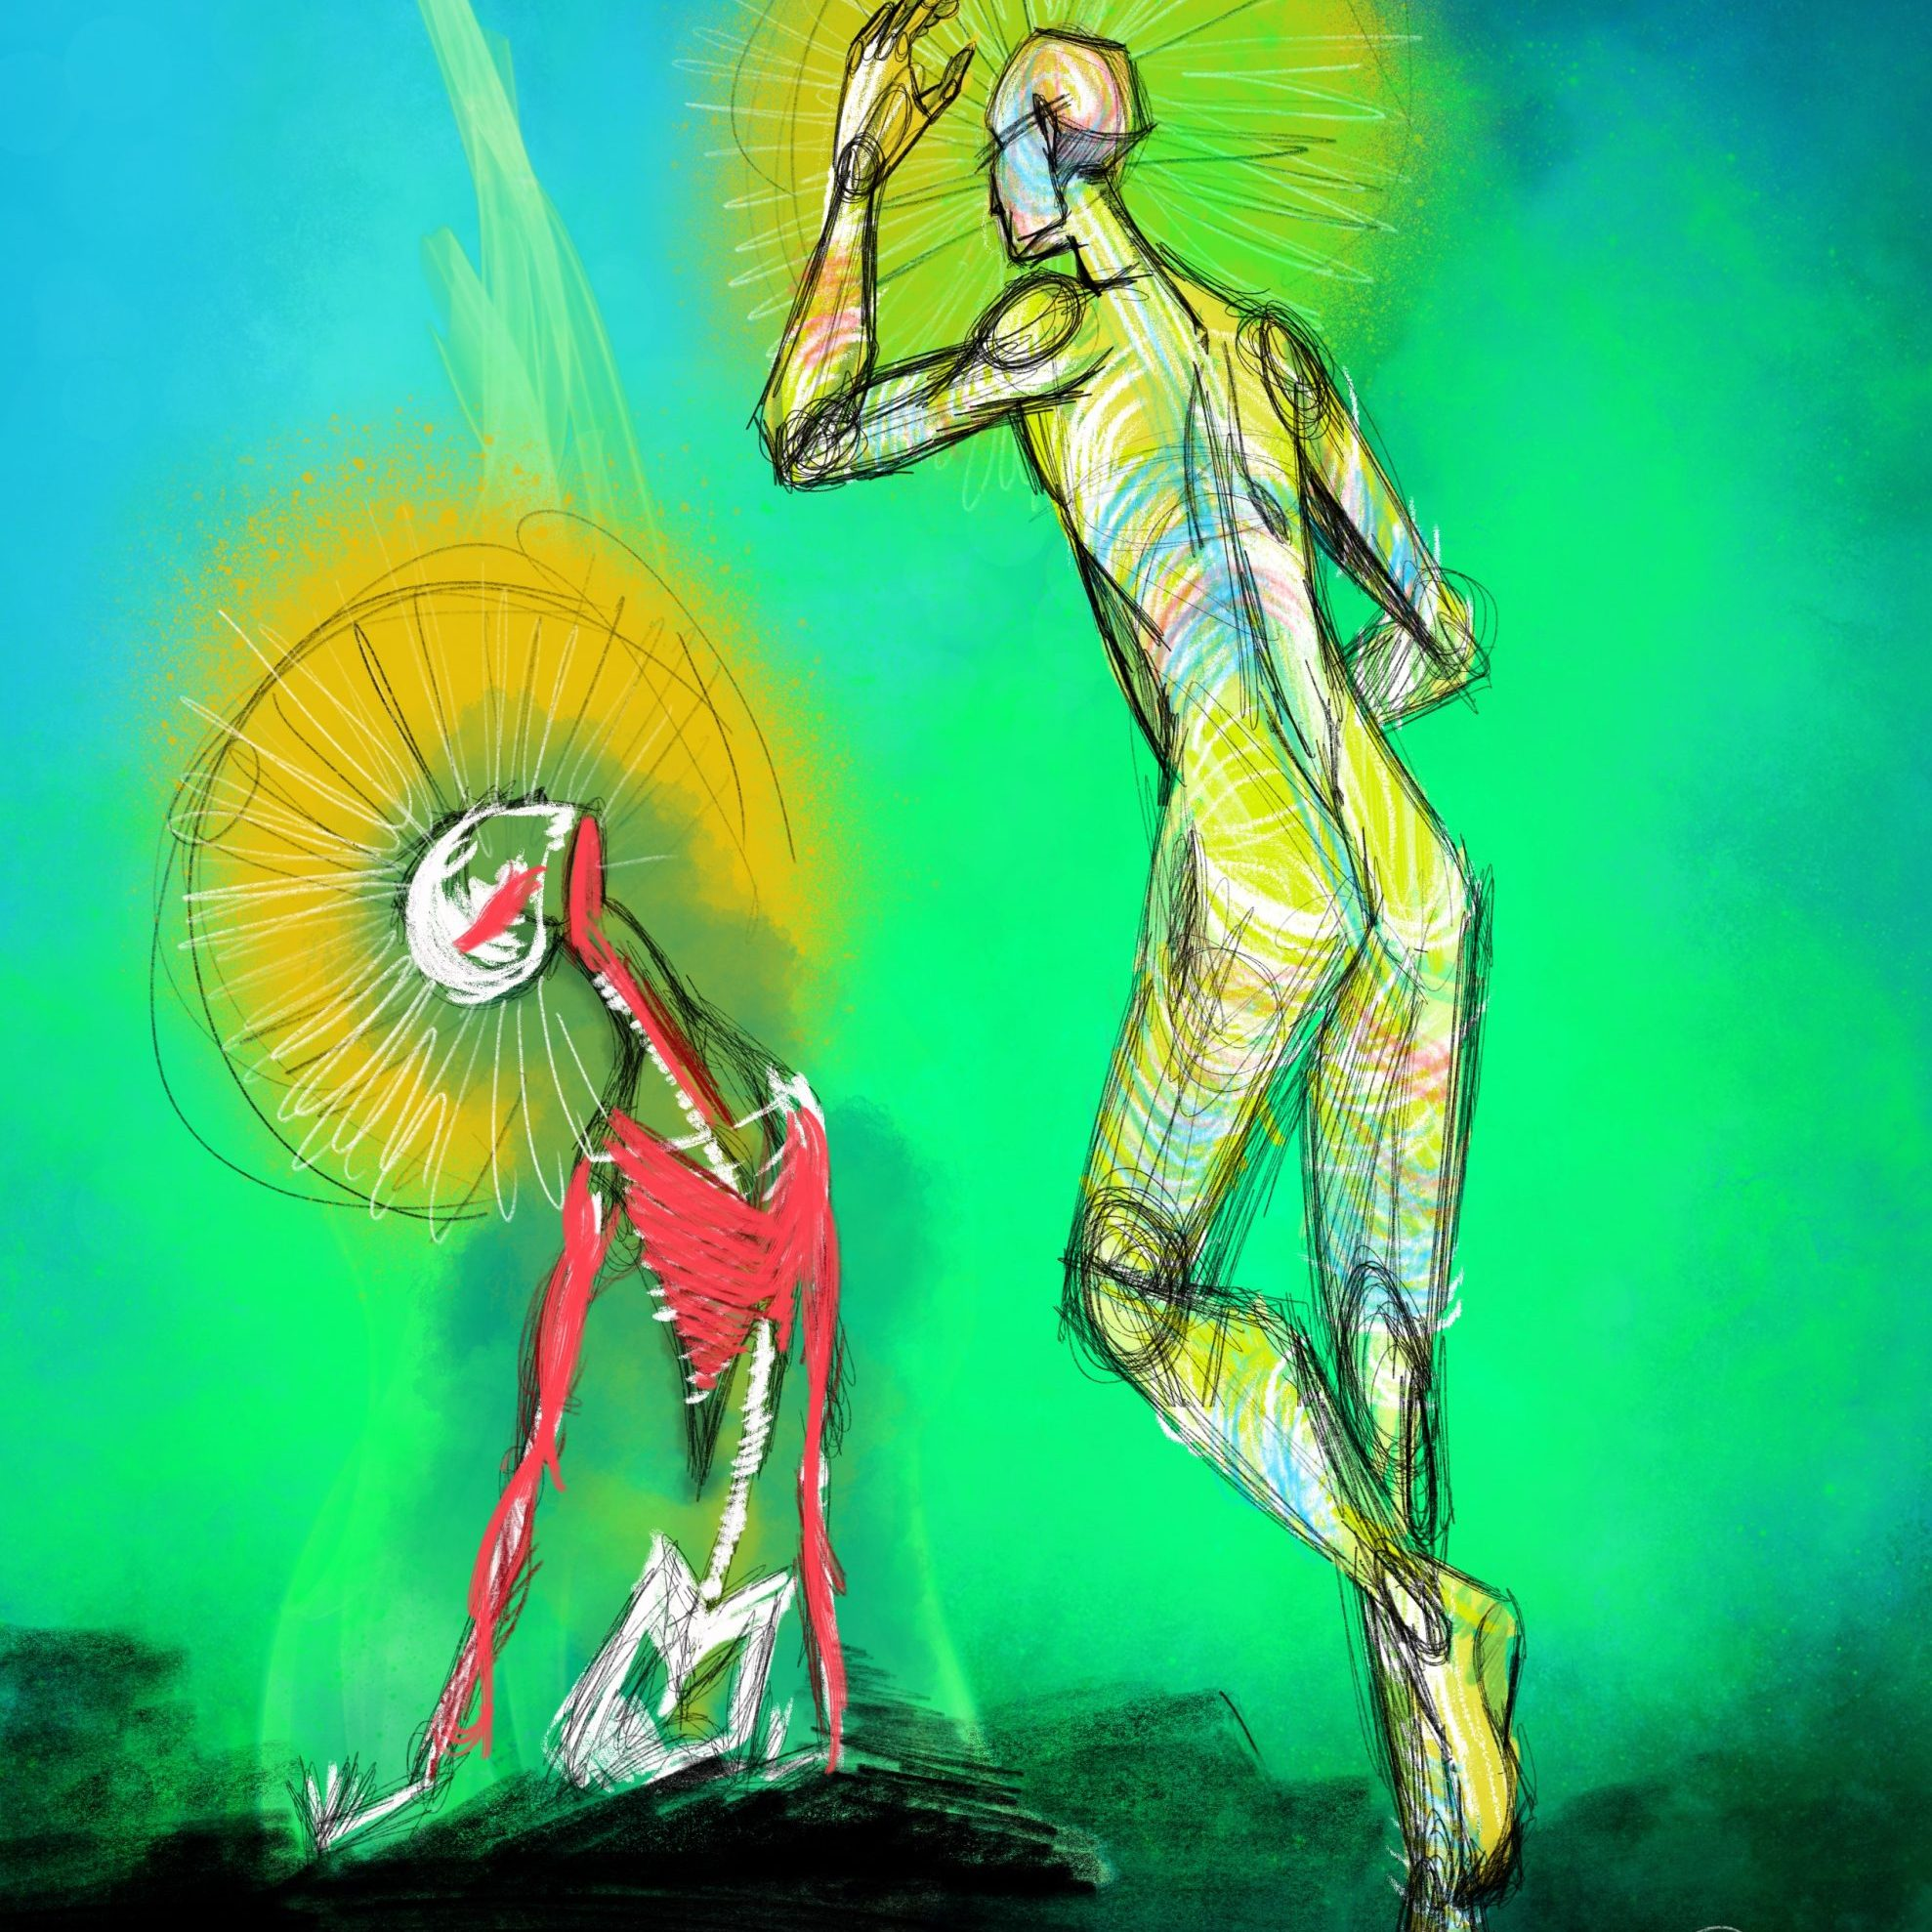 Two figures reaching for one another with saint halos.